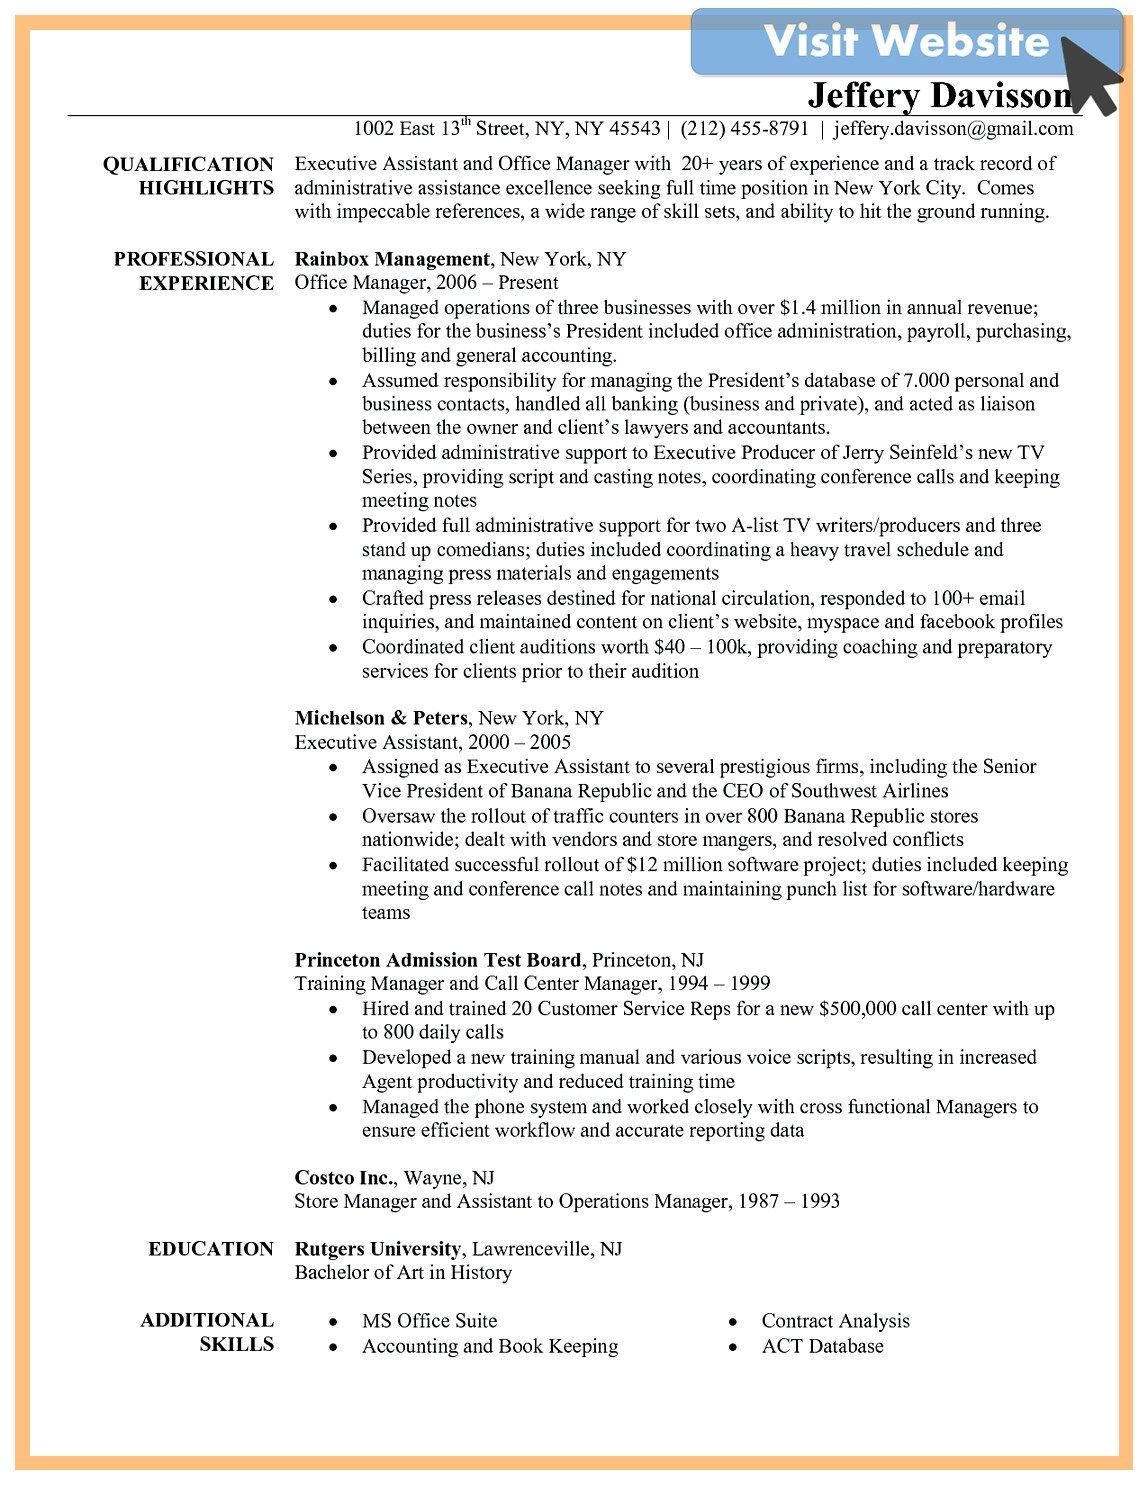 Medical Office Manager Resume Template In 2020 Office Manager Resume Job Resume Examples Resume Examples